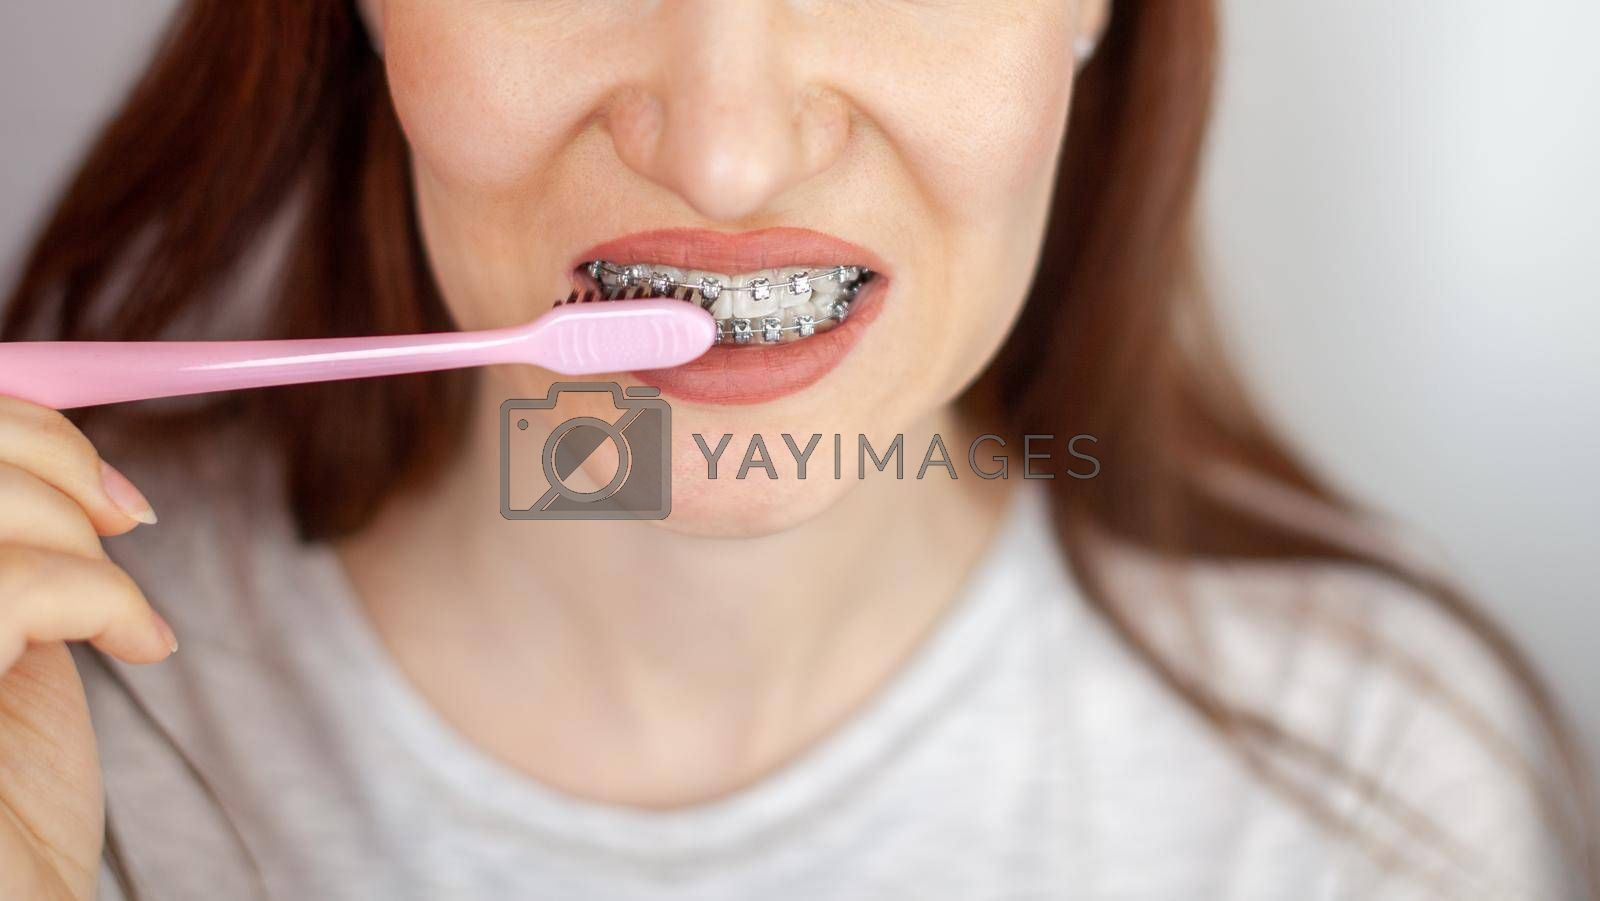 A girl with braces on her white teeth is brushing her teeth with a toothbrush. Straightening and dental hygiene. Dental care.